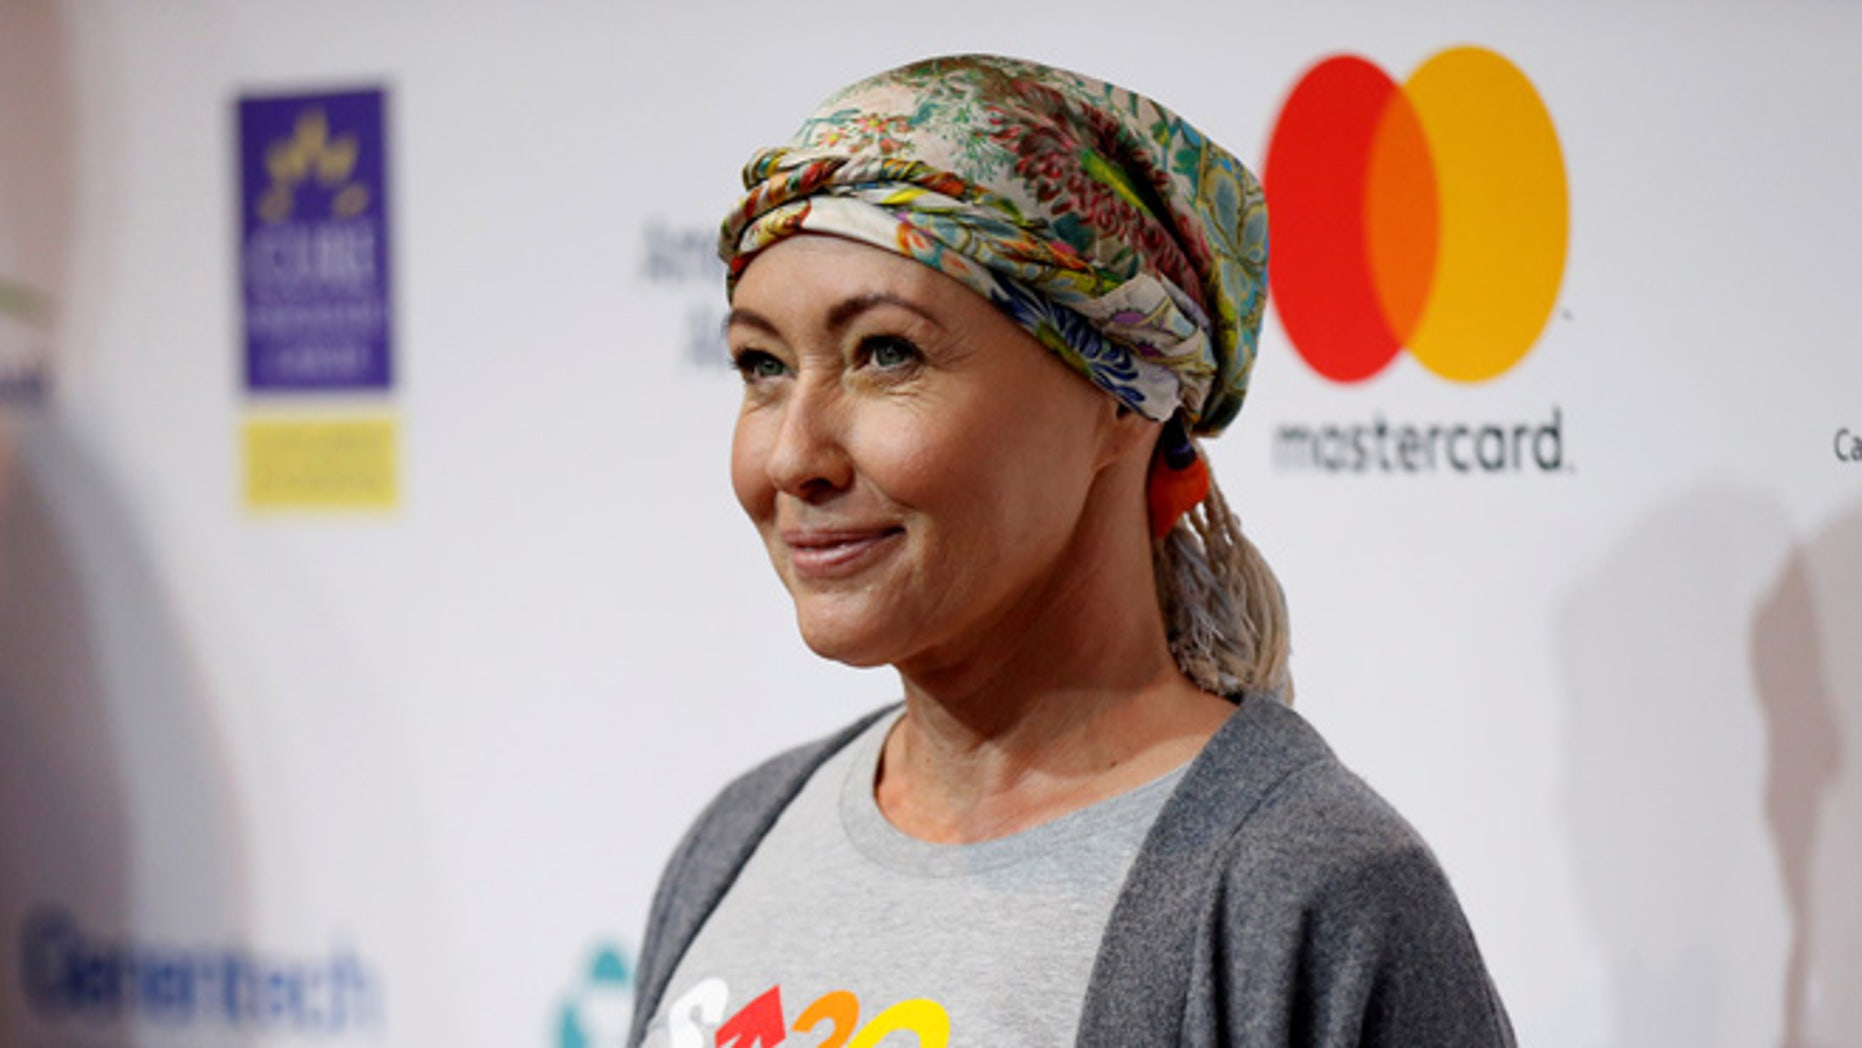 Shannen Doherty celebrated her five-year wedding anniversary amid her cancer battle.